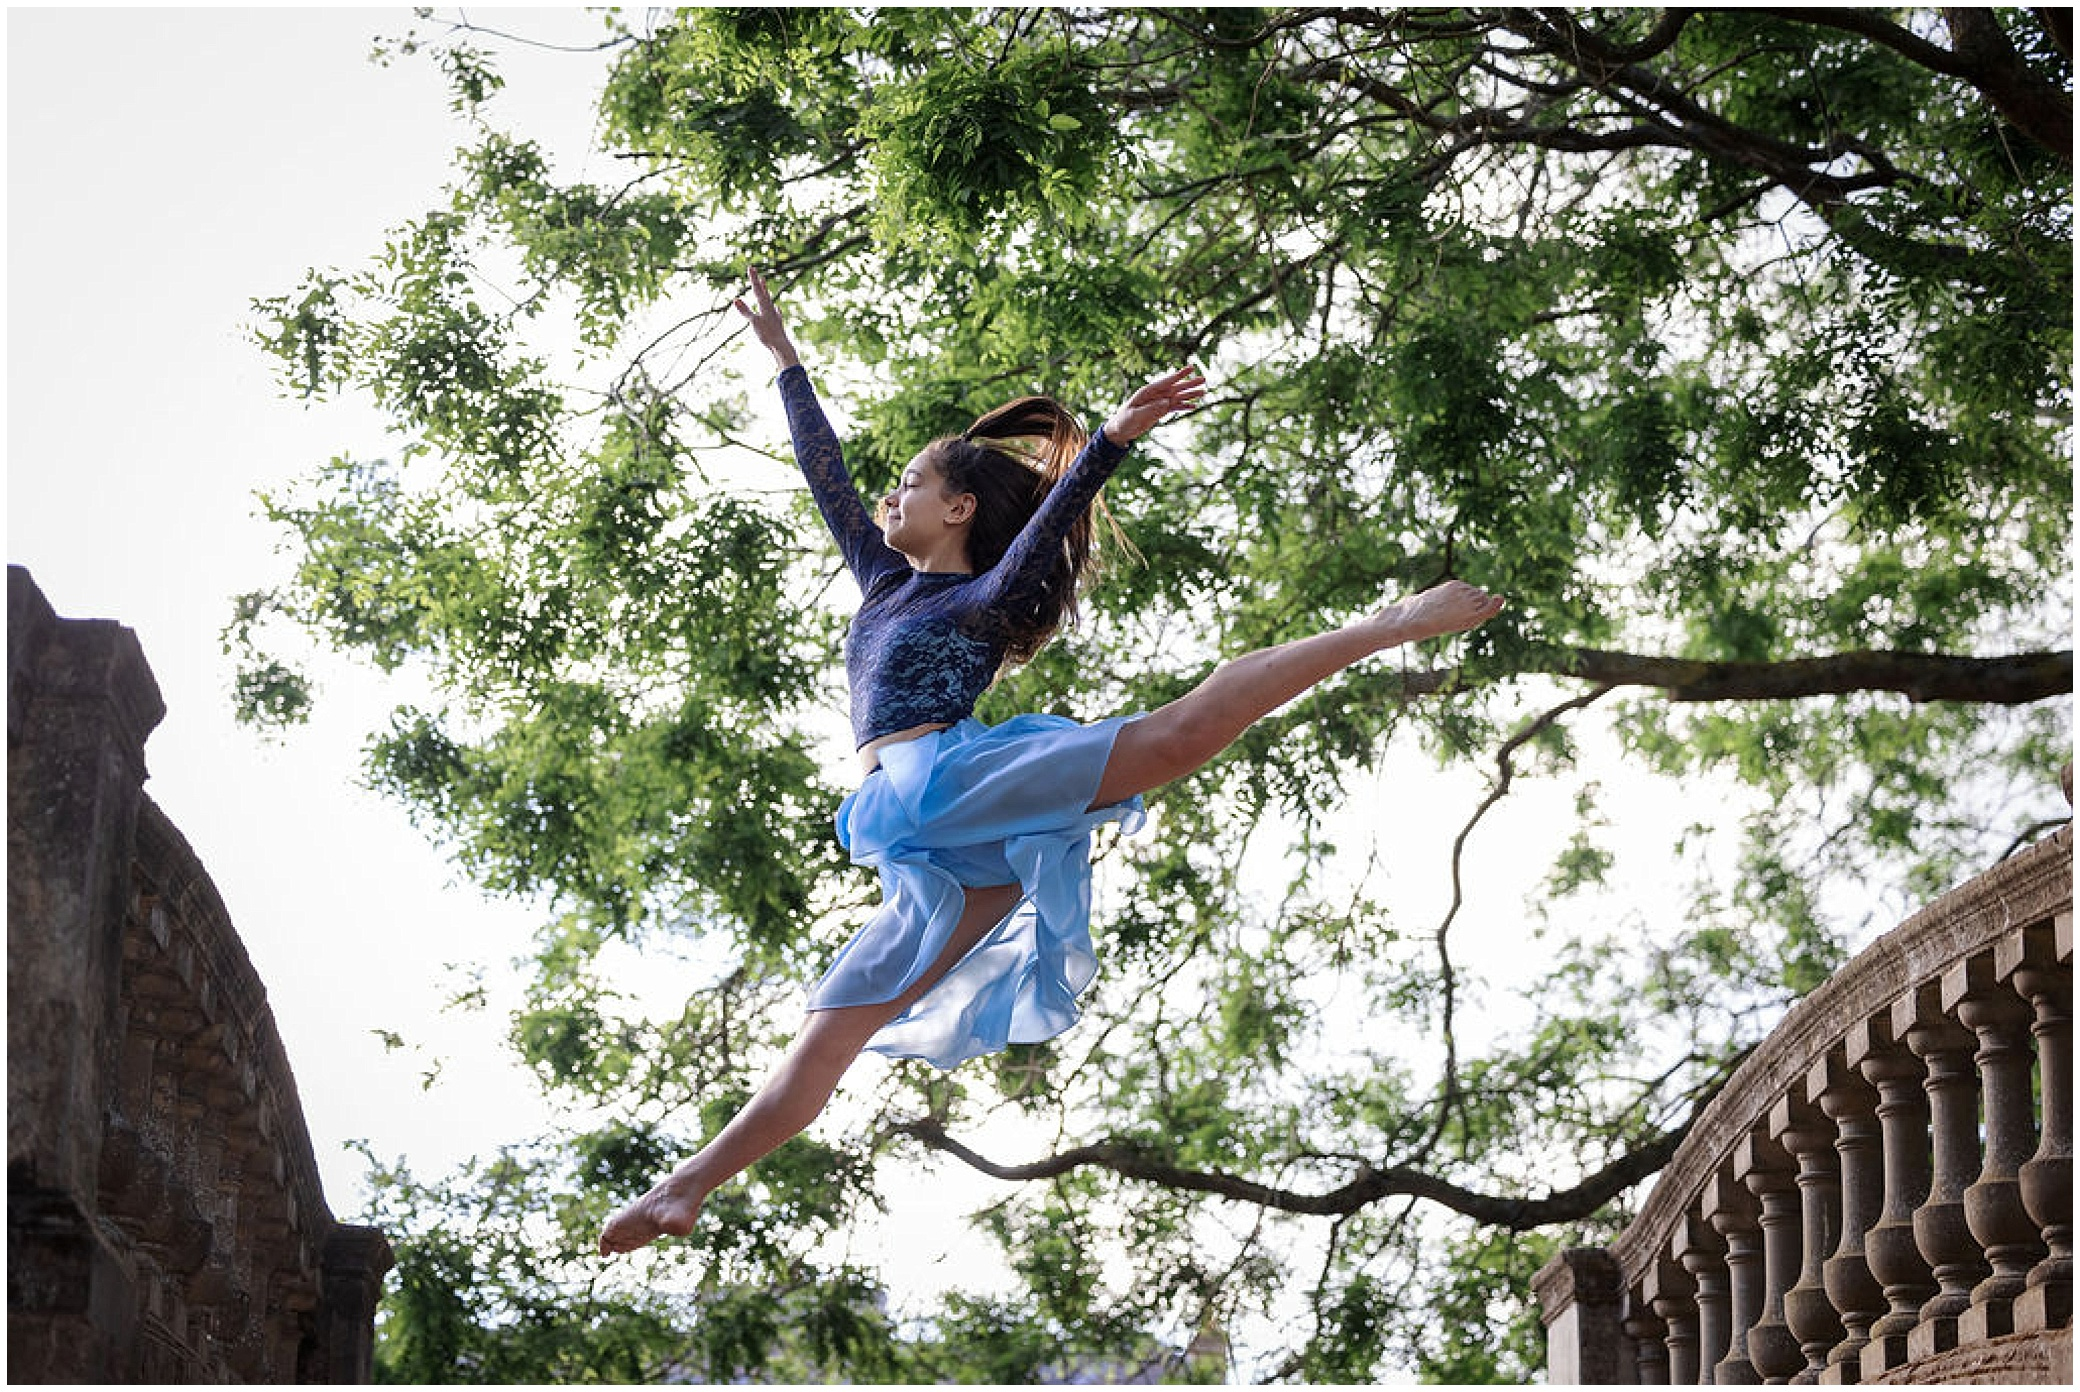 dancer performing a grand jete ballet move outdoors